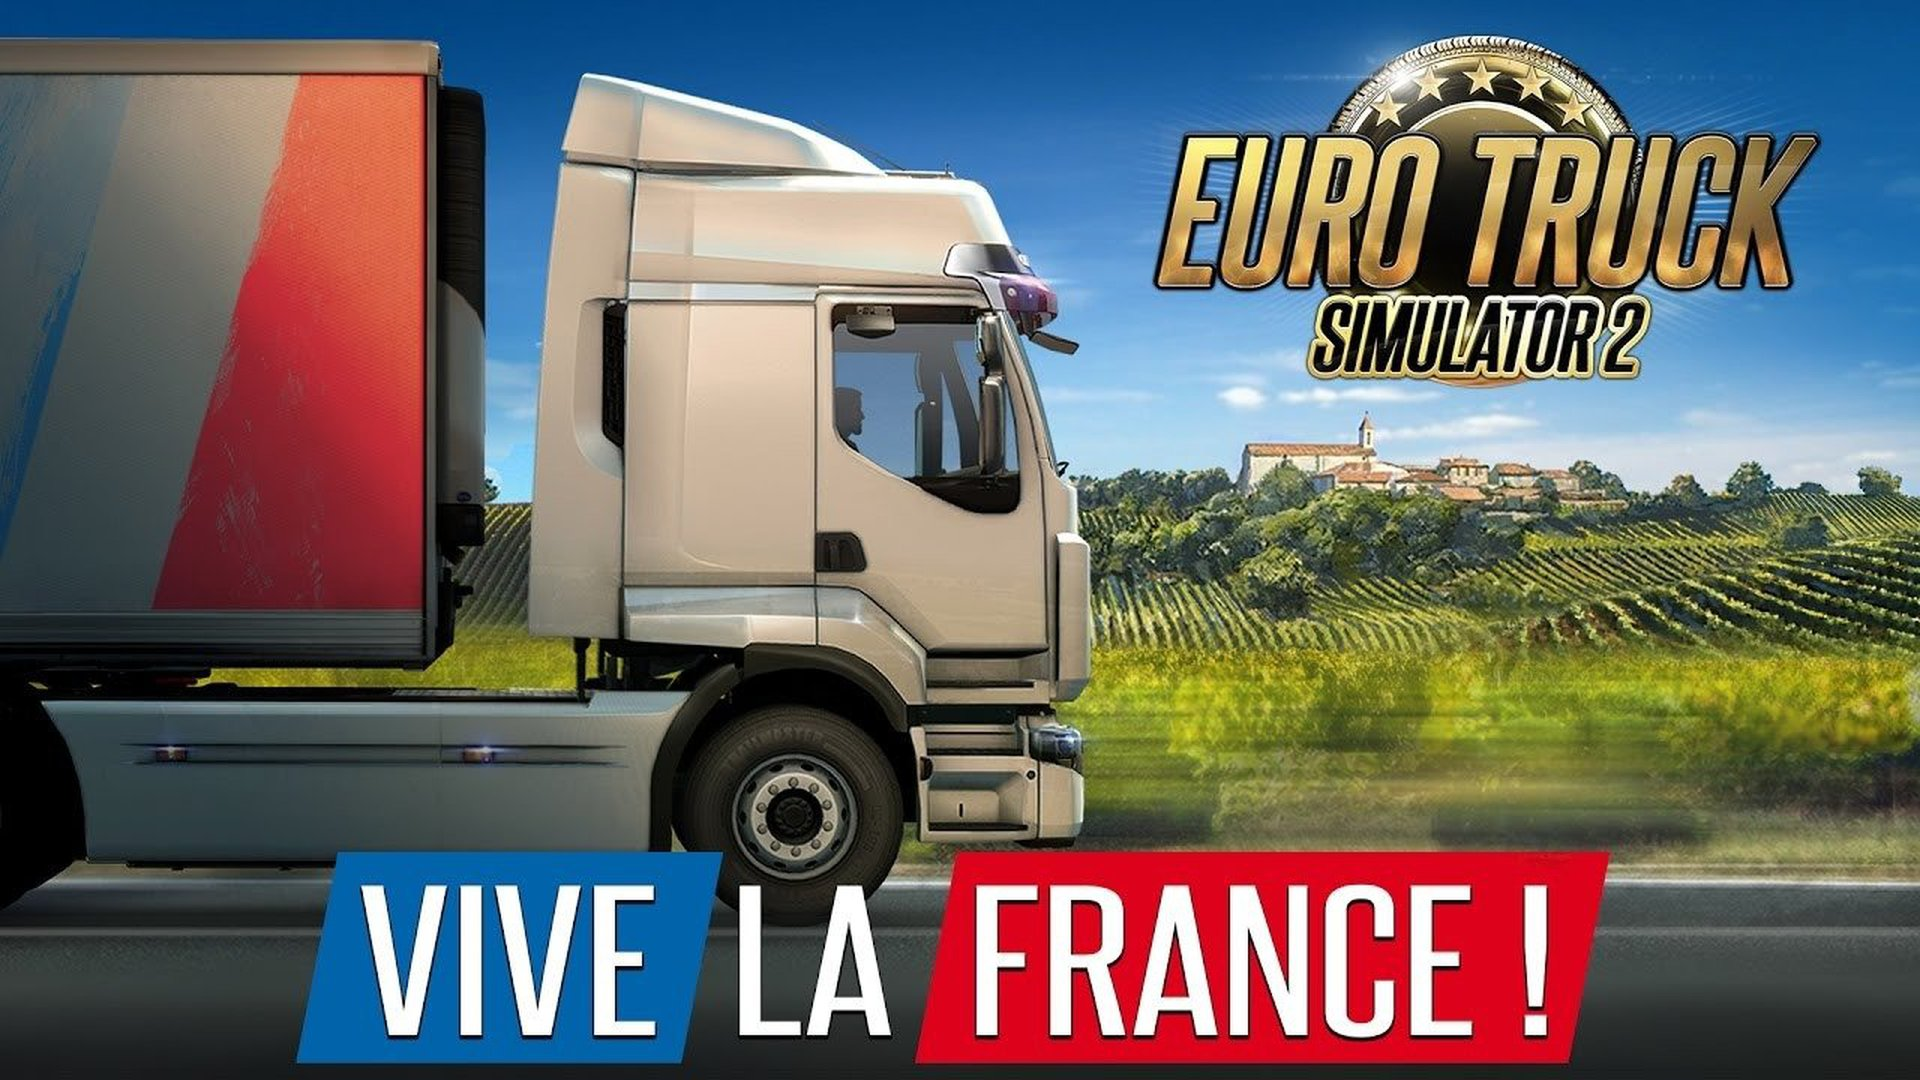 Euro Truck Simulator 2 - Vive la France ! Video